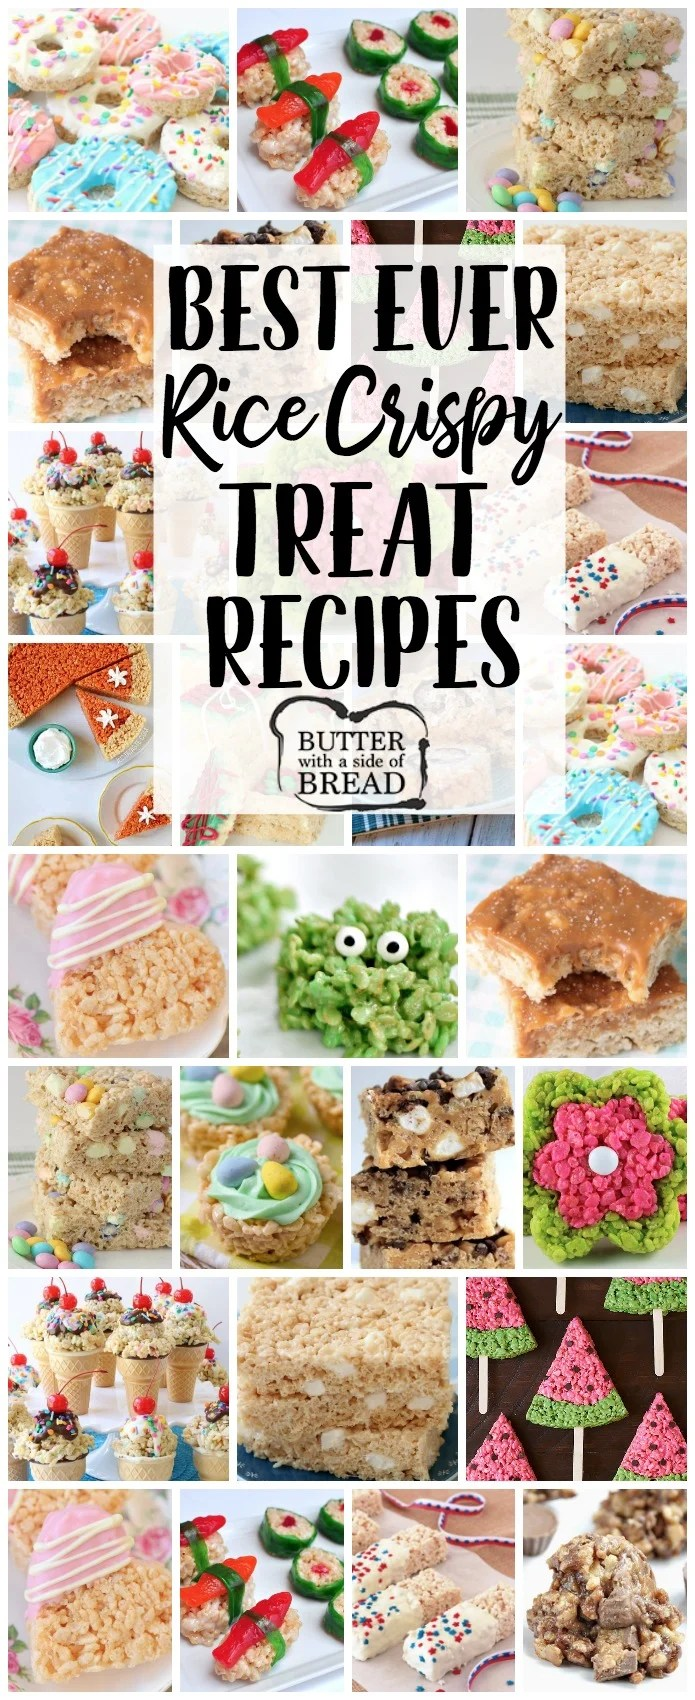 Rice Krispie Treats recipe for any and all occasions! From salted caramel to churro and everything in between, you're sure to find a rice crispy treats recipe you'll love. Our basic recipe for Krispie Treats is THE BEST!